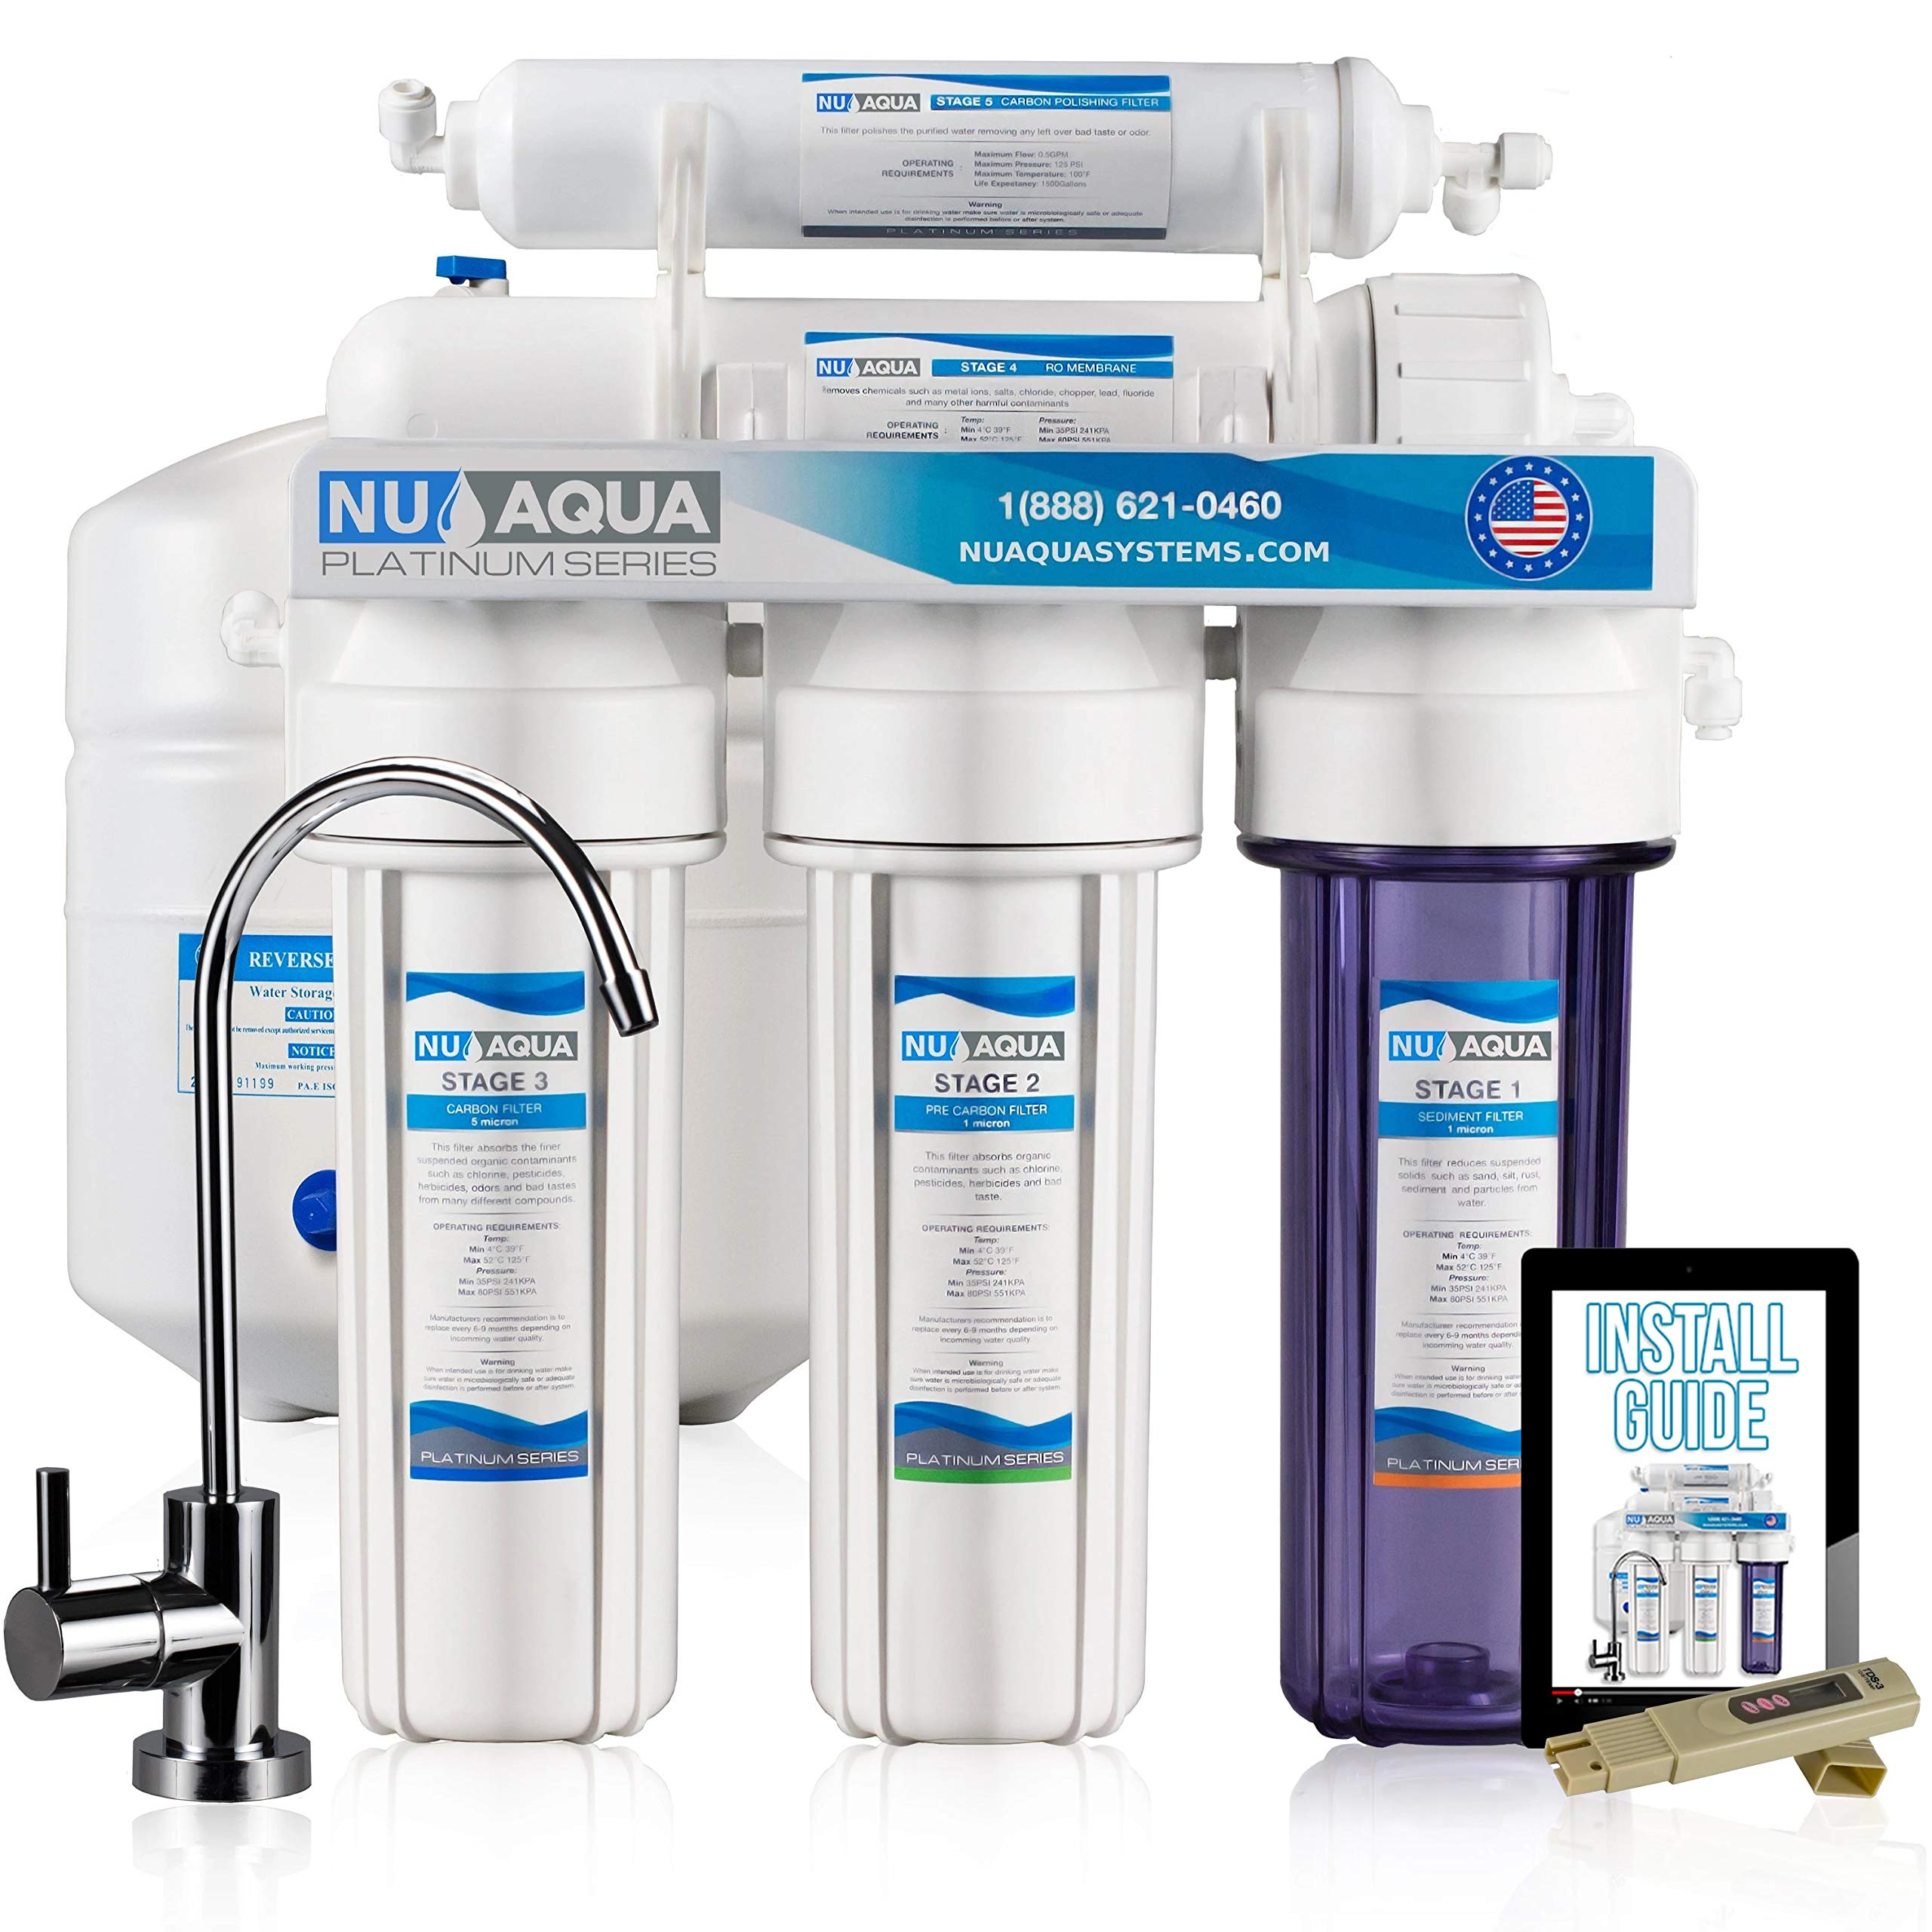 NU Aqua Platinum Series Deluxe High Capacity 100GPD 5-Stage Under Sink Reverse Osmosis Ultimate Purifier Drinking Water Filter System - Bonus PPM Meter and Installation DVD by NU Aqua